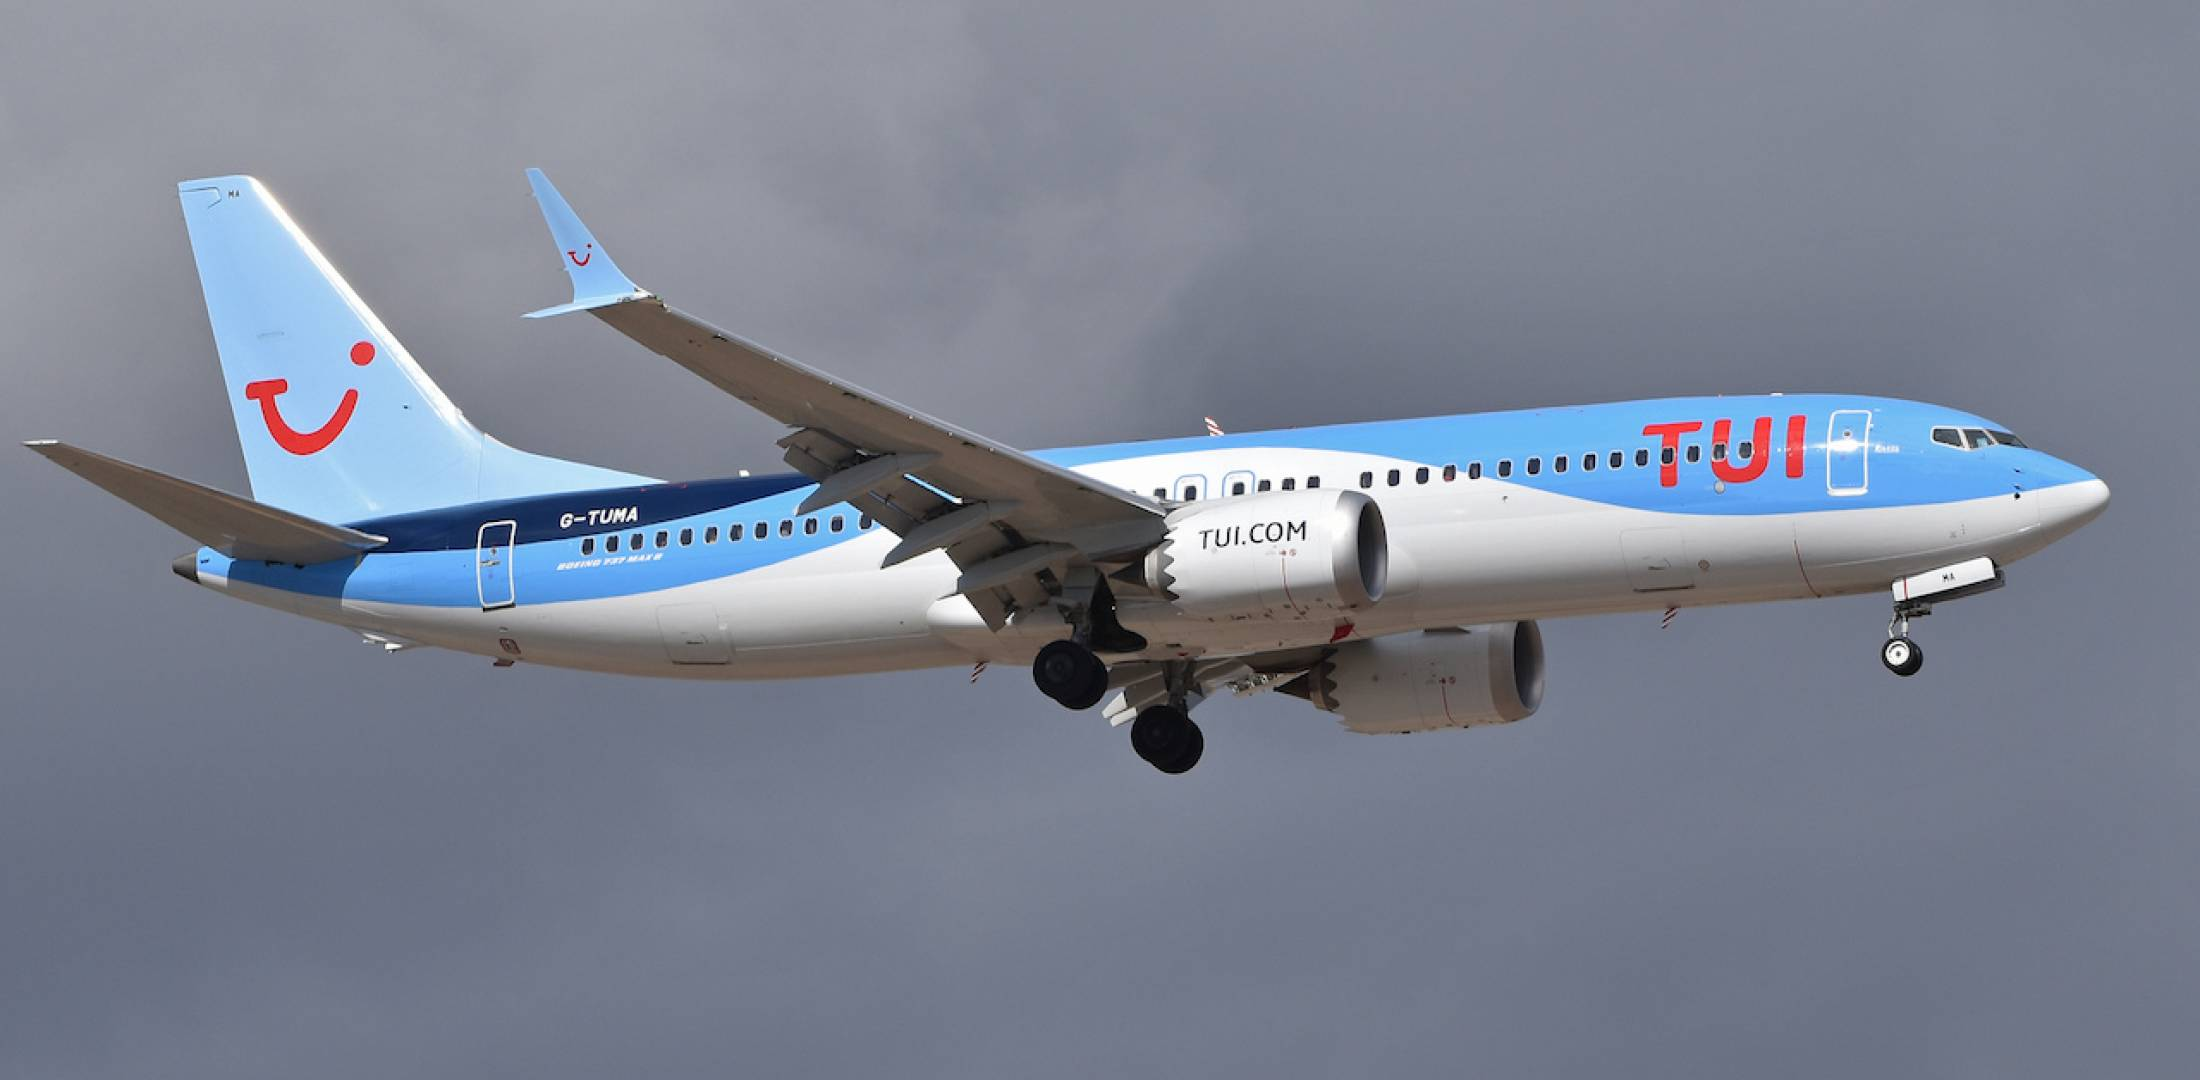 In Suspends Boeing And 737 EuropeAir Operations To Easa Max sBCtQxhrd